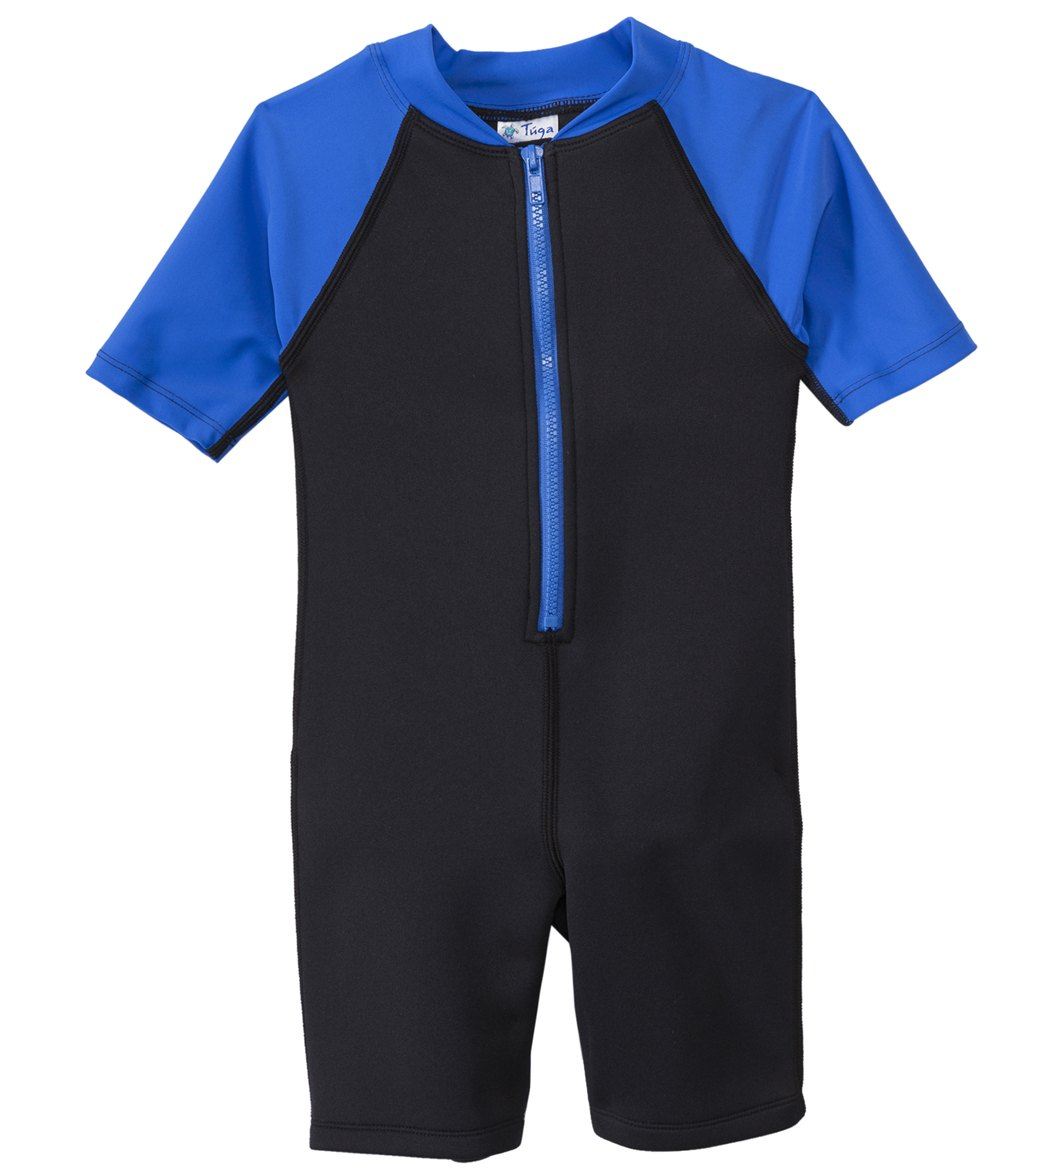 36c8521ab1 Tuga Kids  Thermal Suit (1-14 years) at SwimOutlet.com